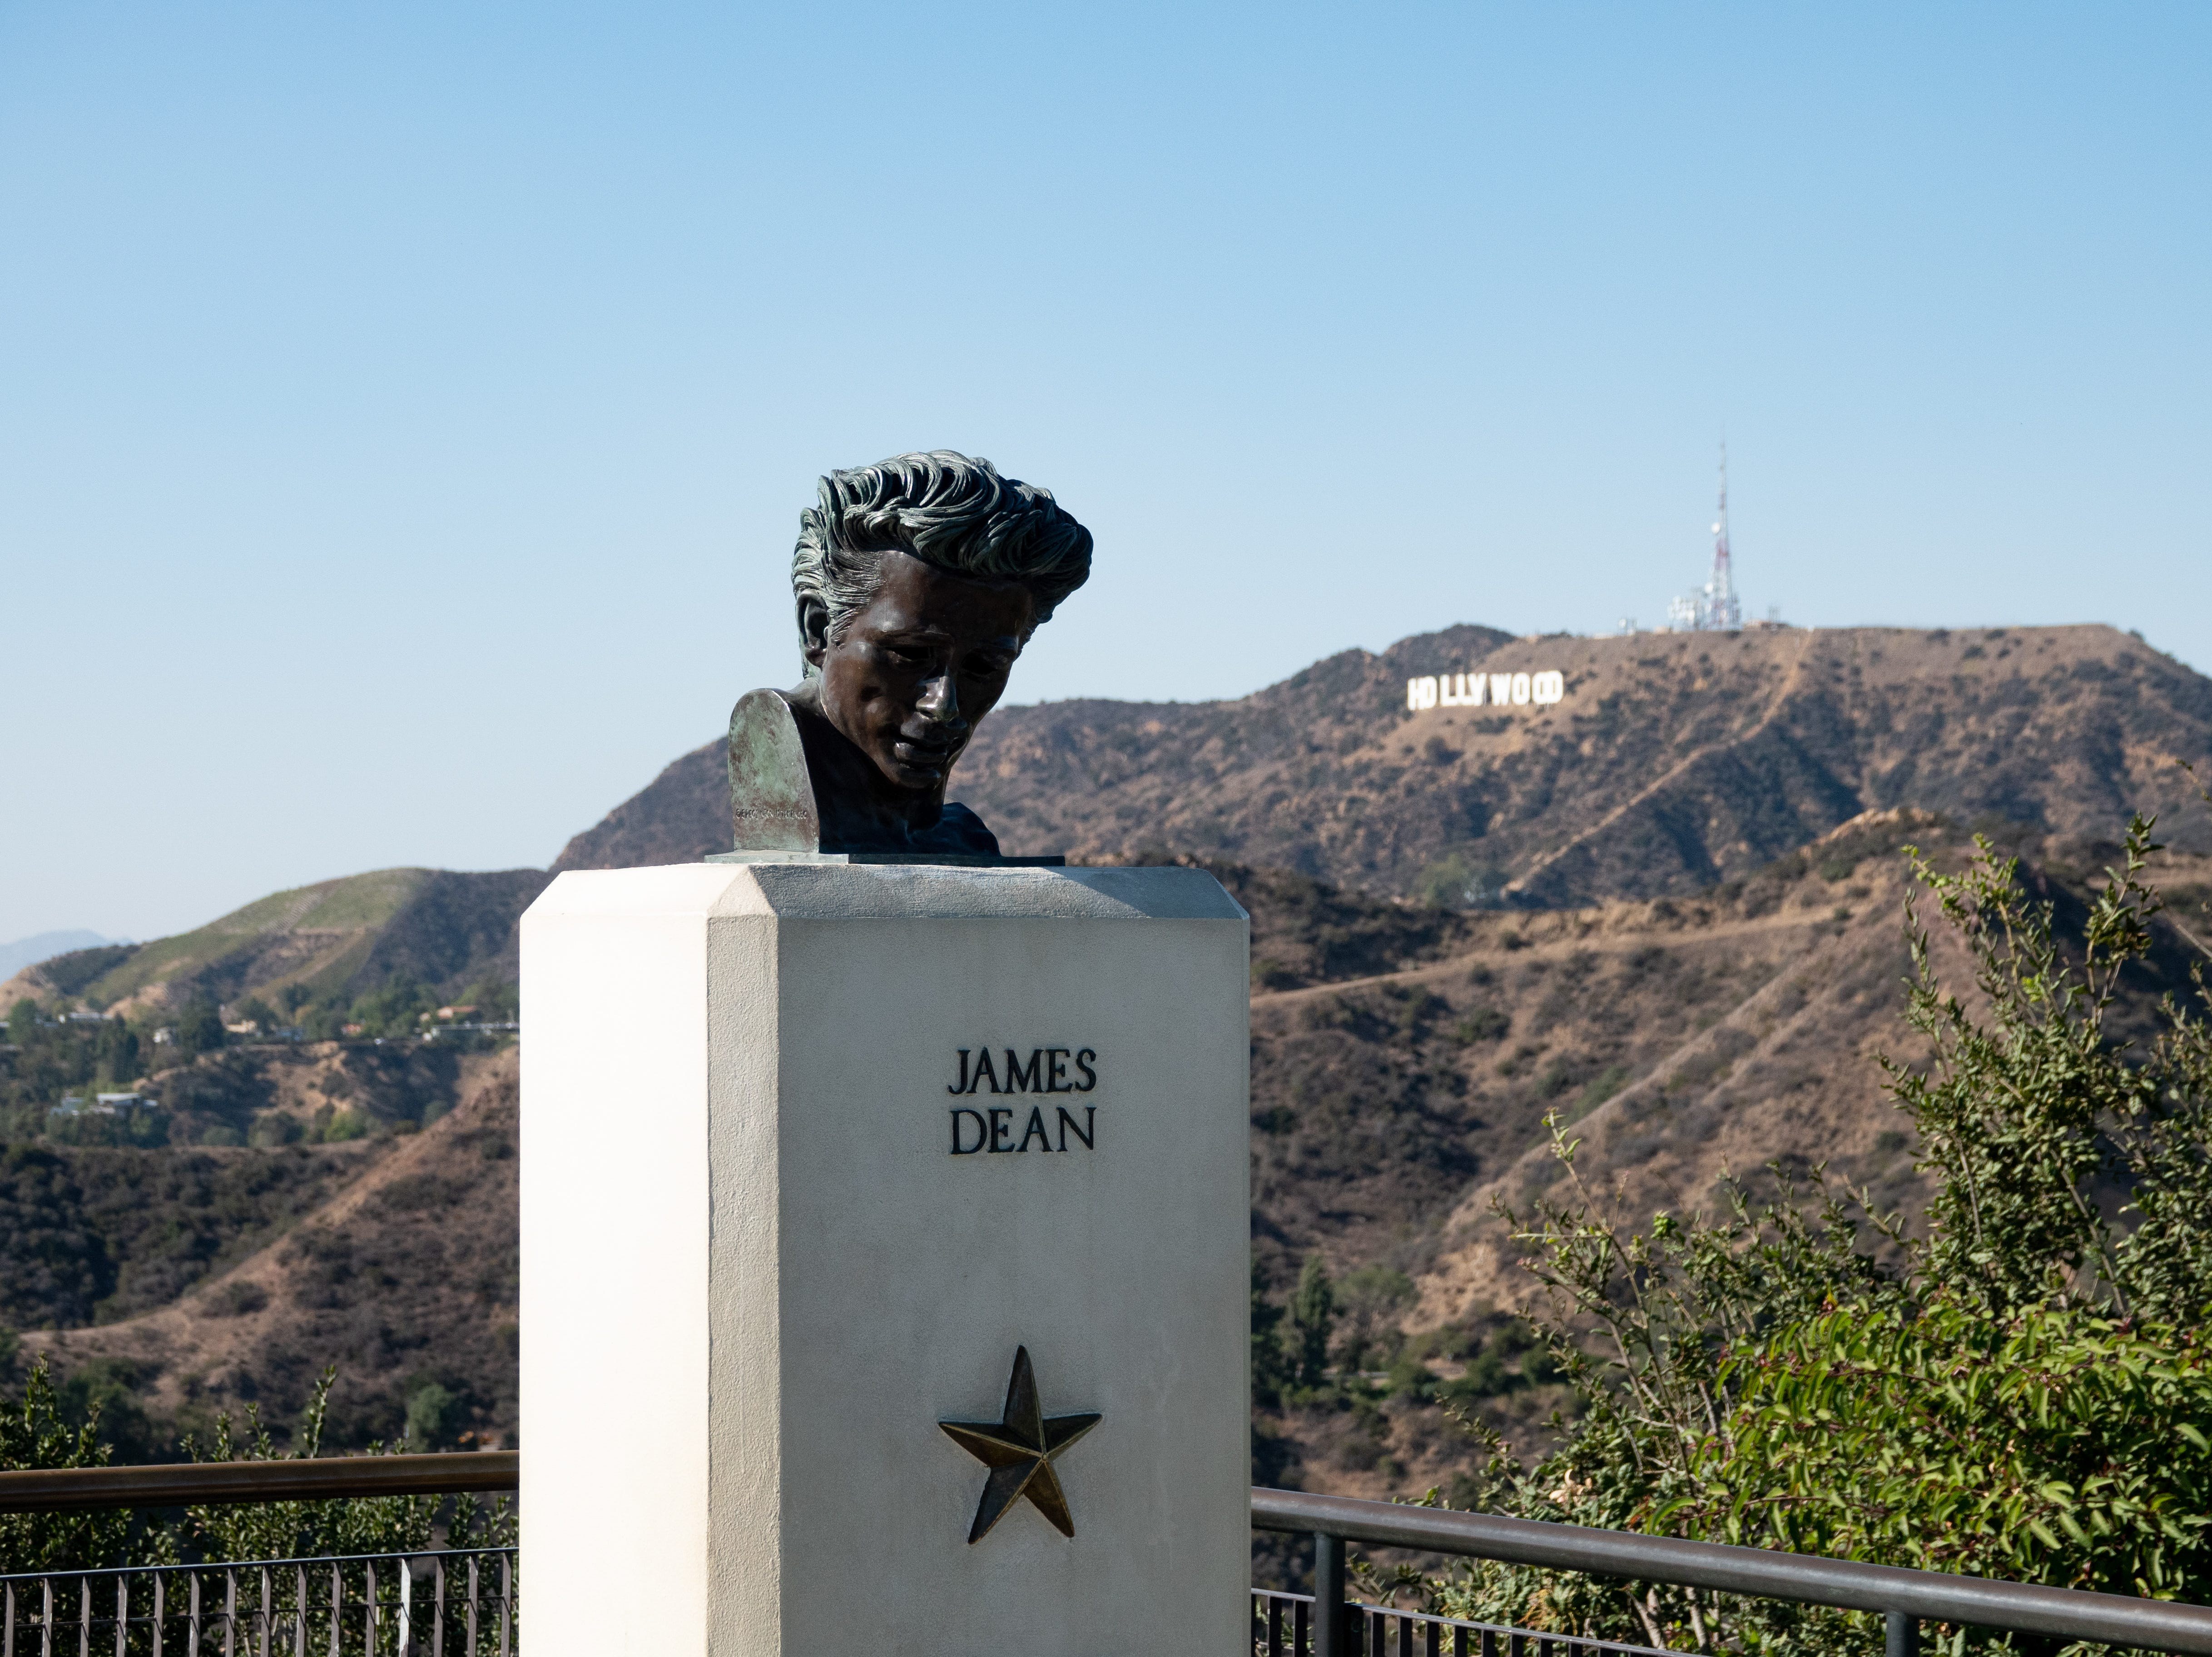 """The film """"Rebel without a Cause"""" was partially filmed at Griffith Observatory. A bust to honor the late actor James Dean is at the observatory, with the iconic Hollywood sign in the background."""